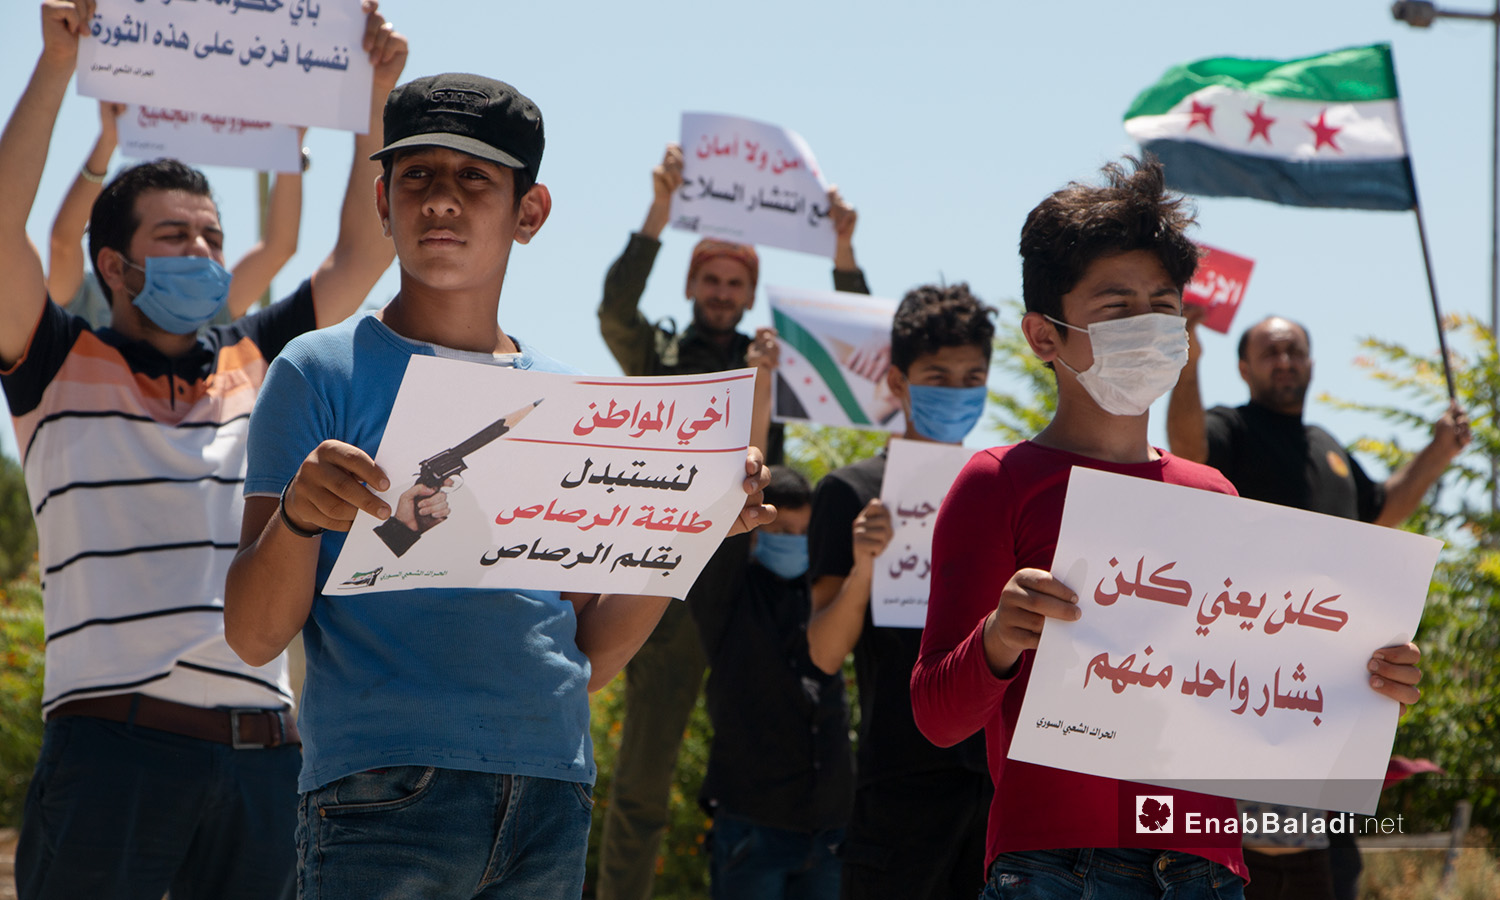 Children and young men carrying signs during a protest stand in Idlib city – 17 July 2020 (Enab Baladi / Anas al-Khouli)